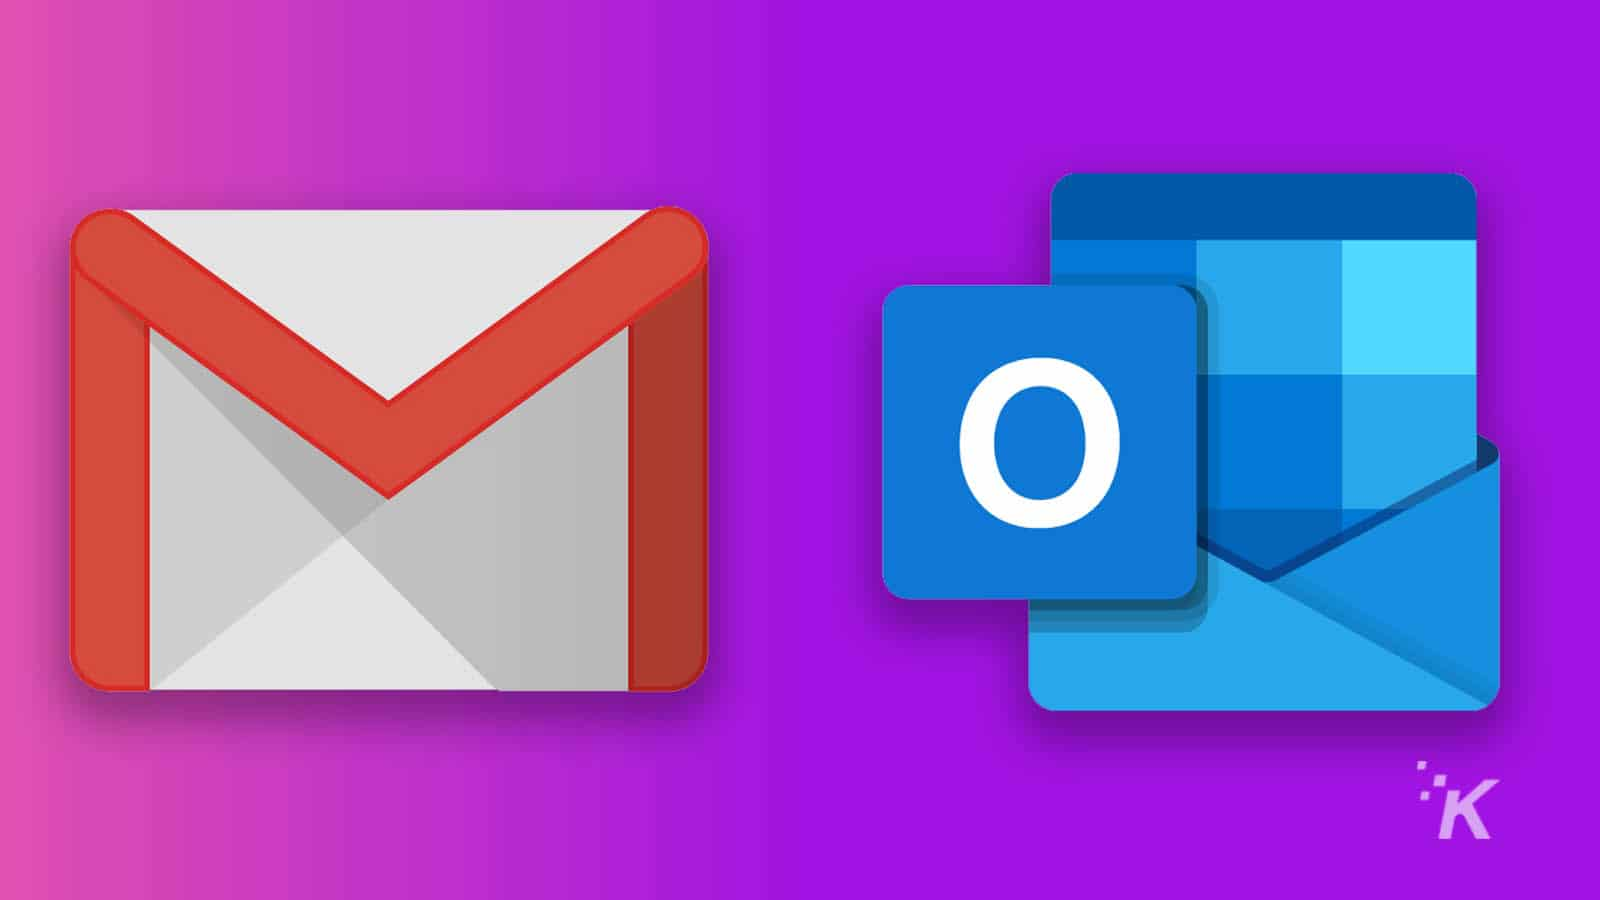 email logos for gmail and outlook